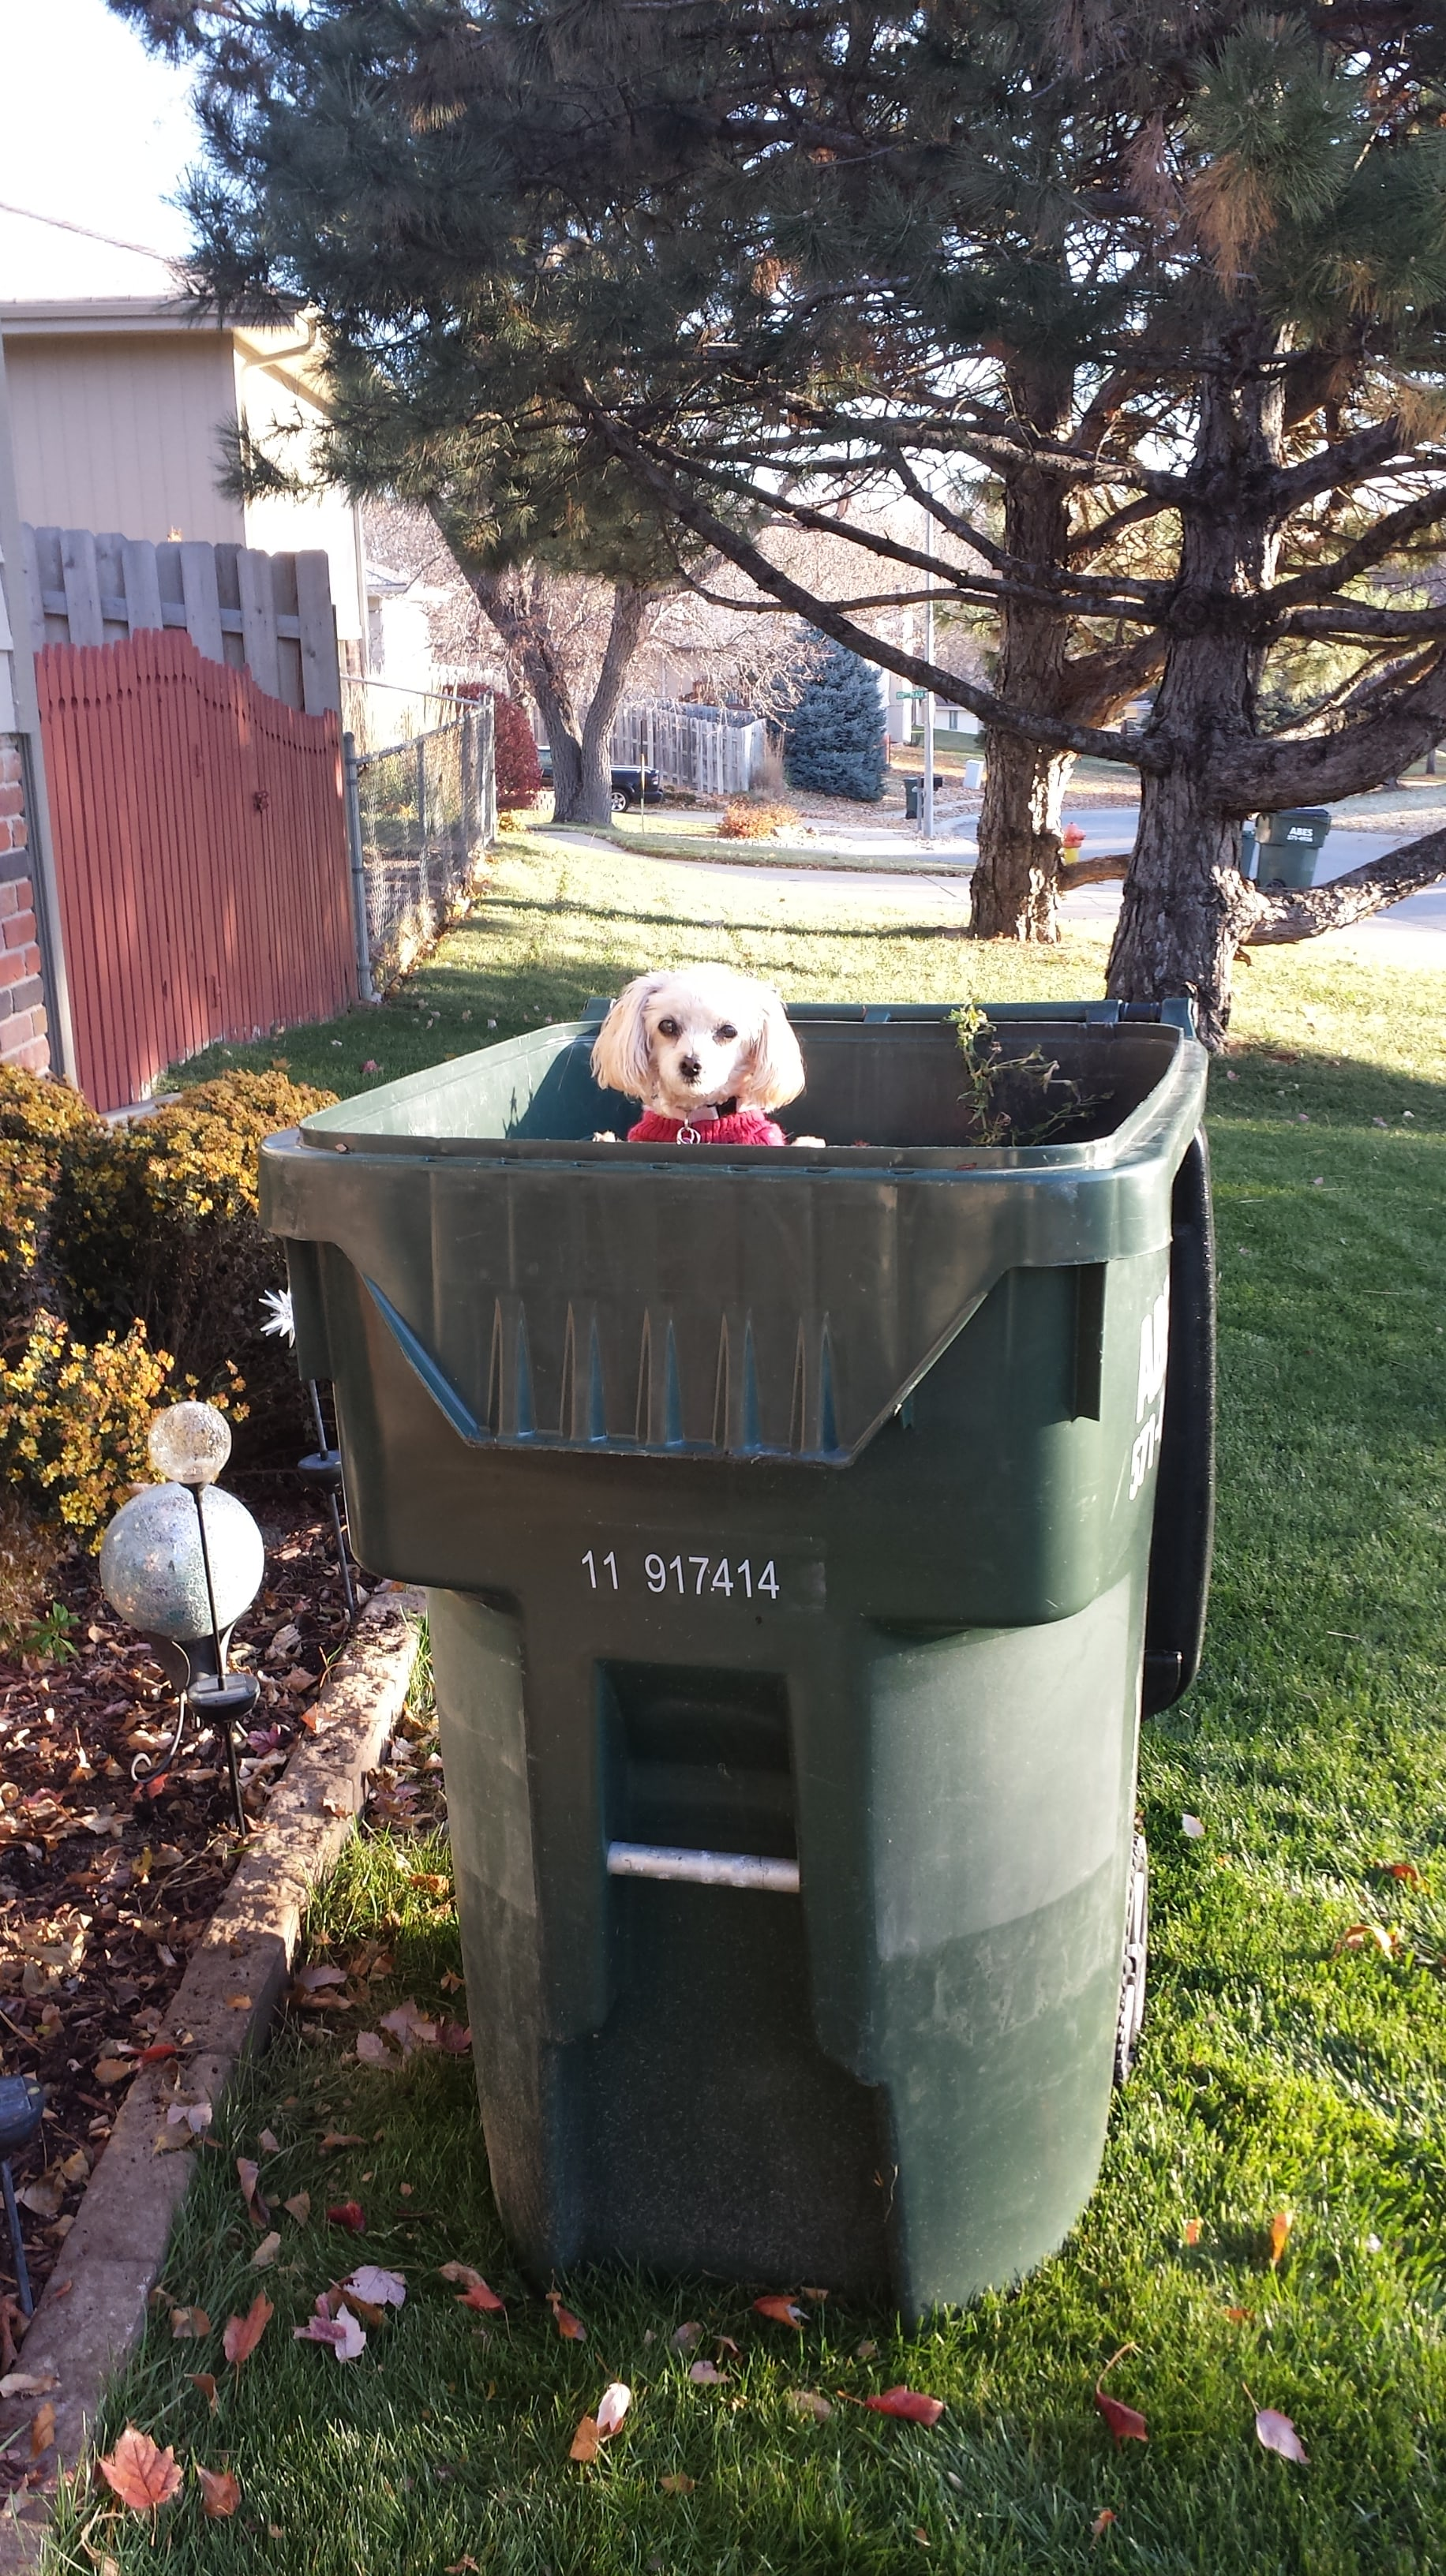 Puppy in trash can